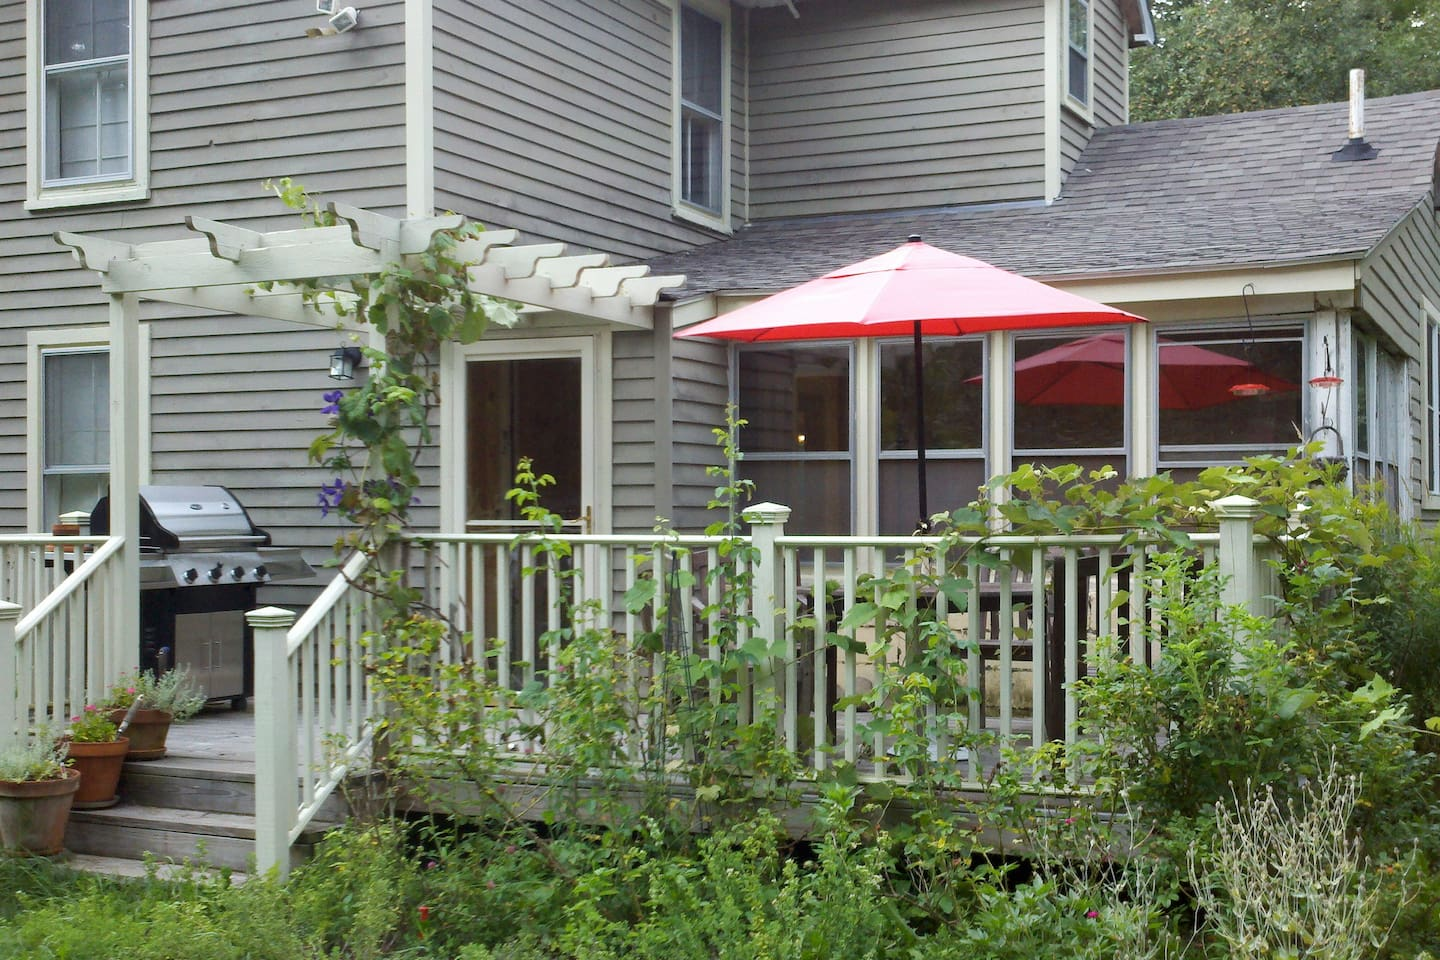 BBQ and dine under the grape arbor. Gas grill with a full tank of propane.